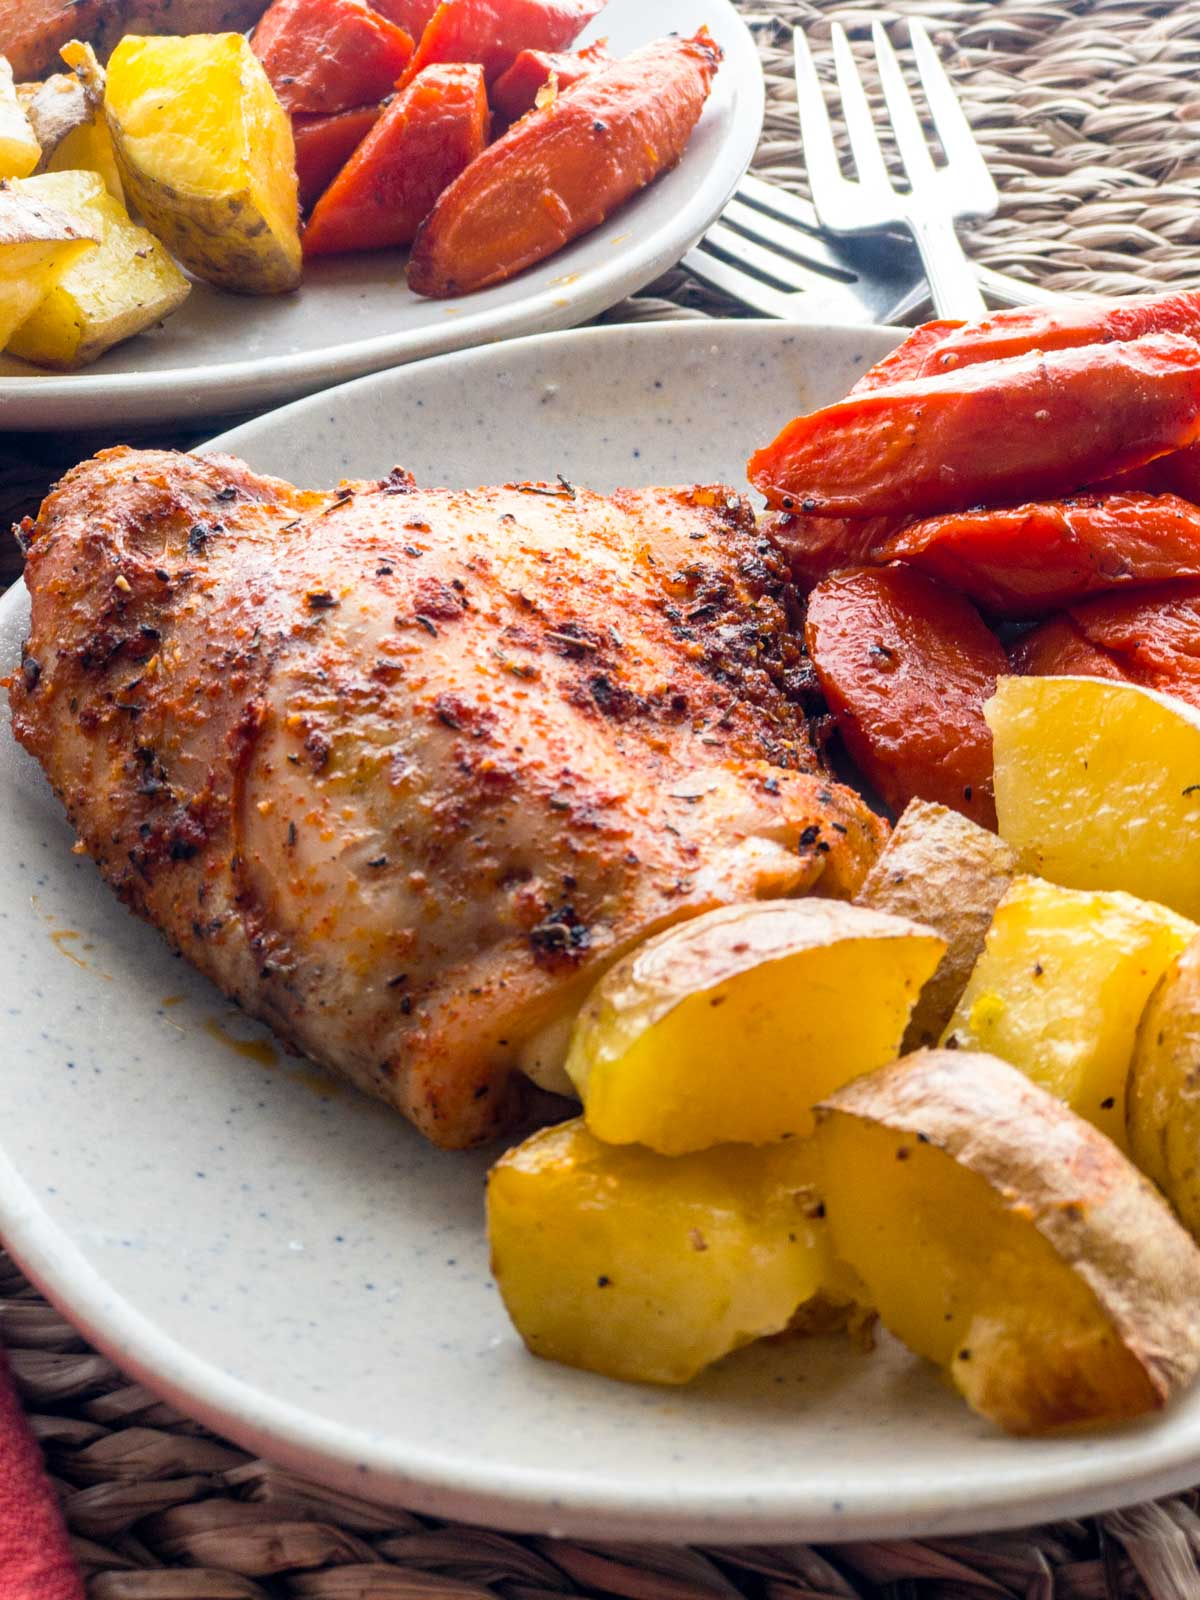 Spice baked chicken thigh with roasted carrots and potatoes on a plate